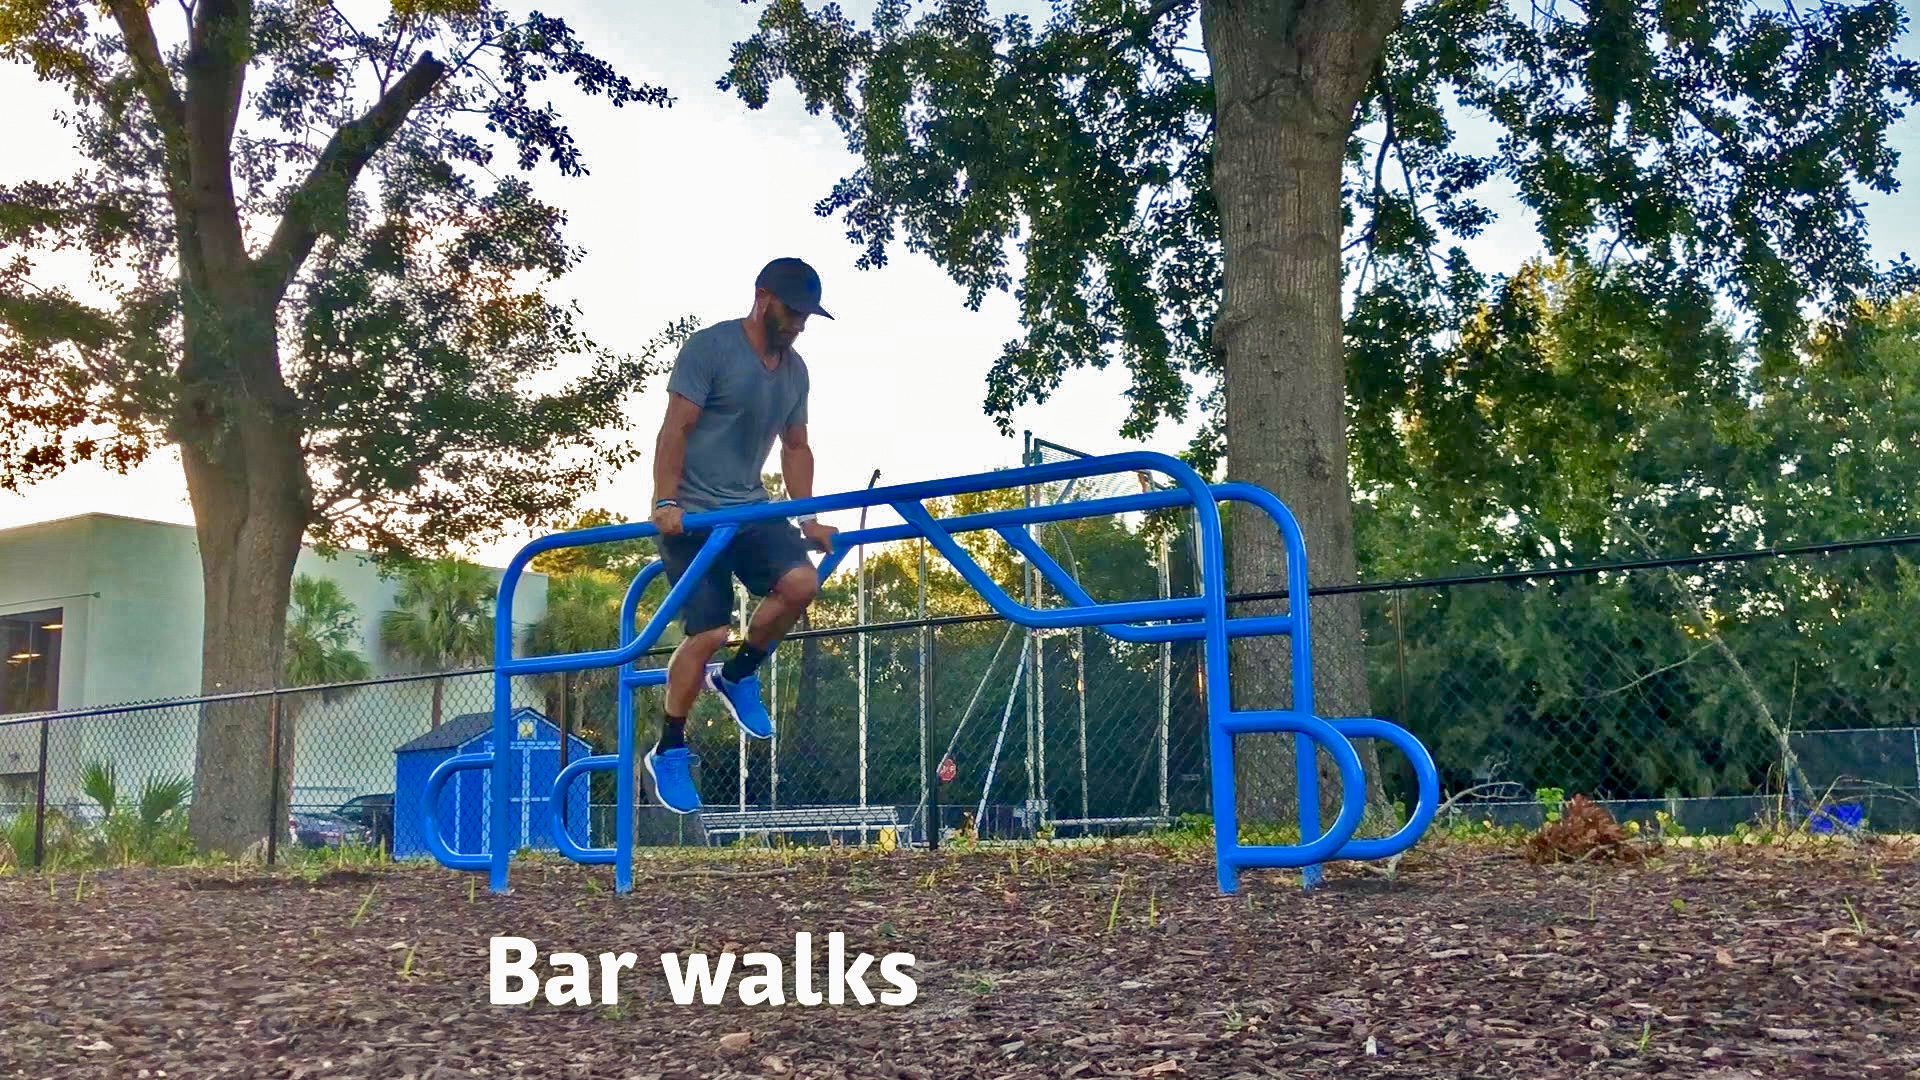 Parallel bar walk outdoor fitness equipment